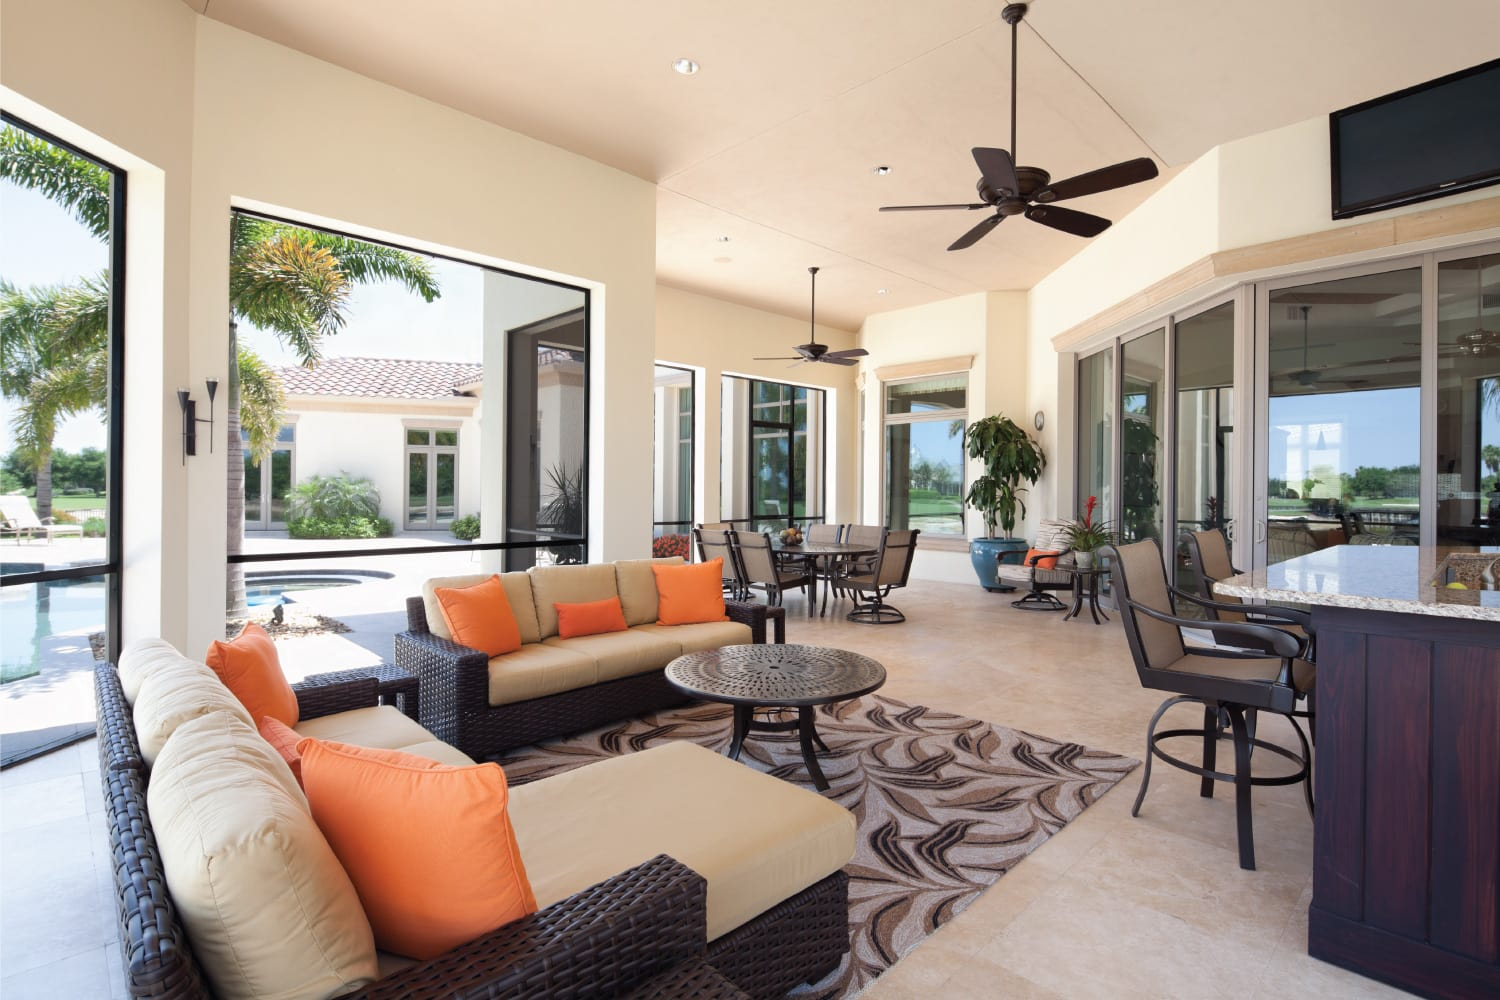 lanai living large windows with two ceiling fans